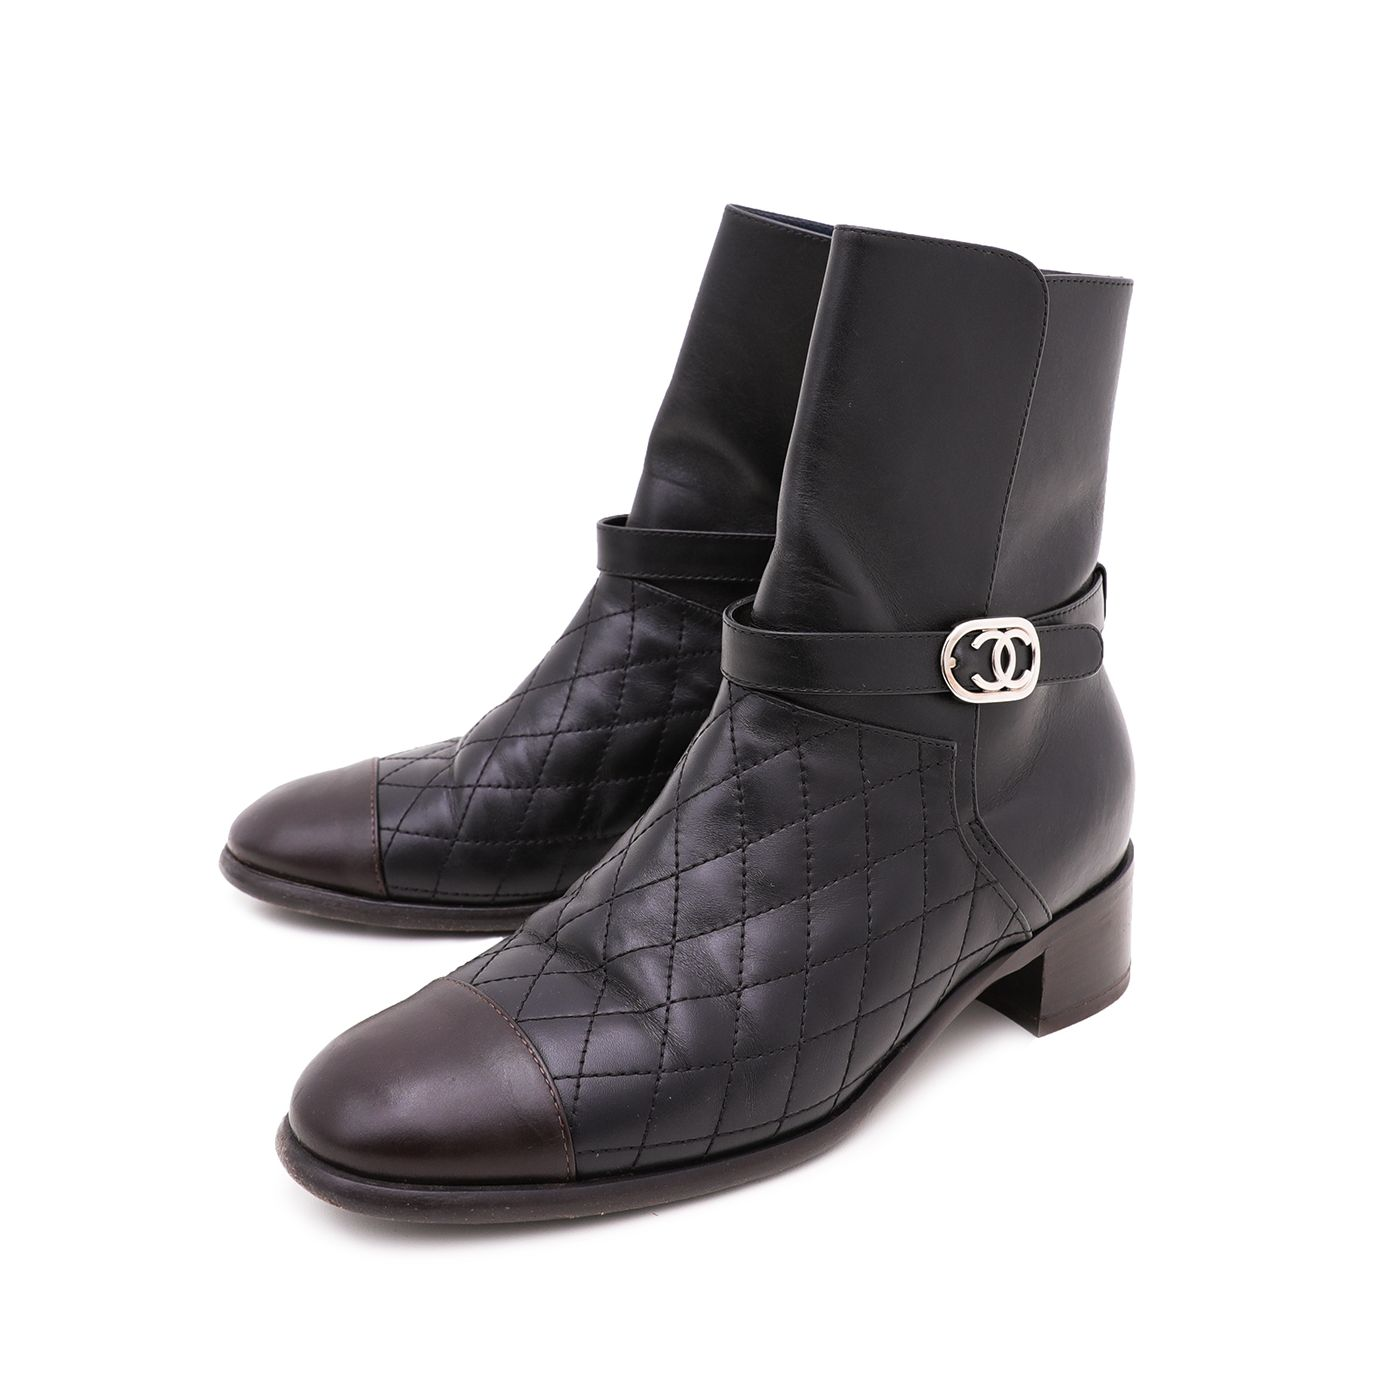 Chanel Bicolor CC Quilted Ankle Boots 39.5